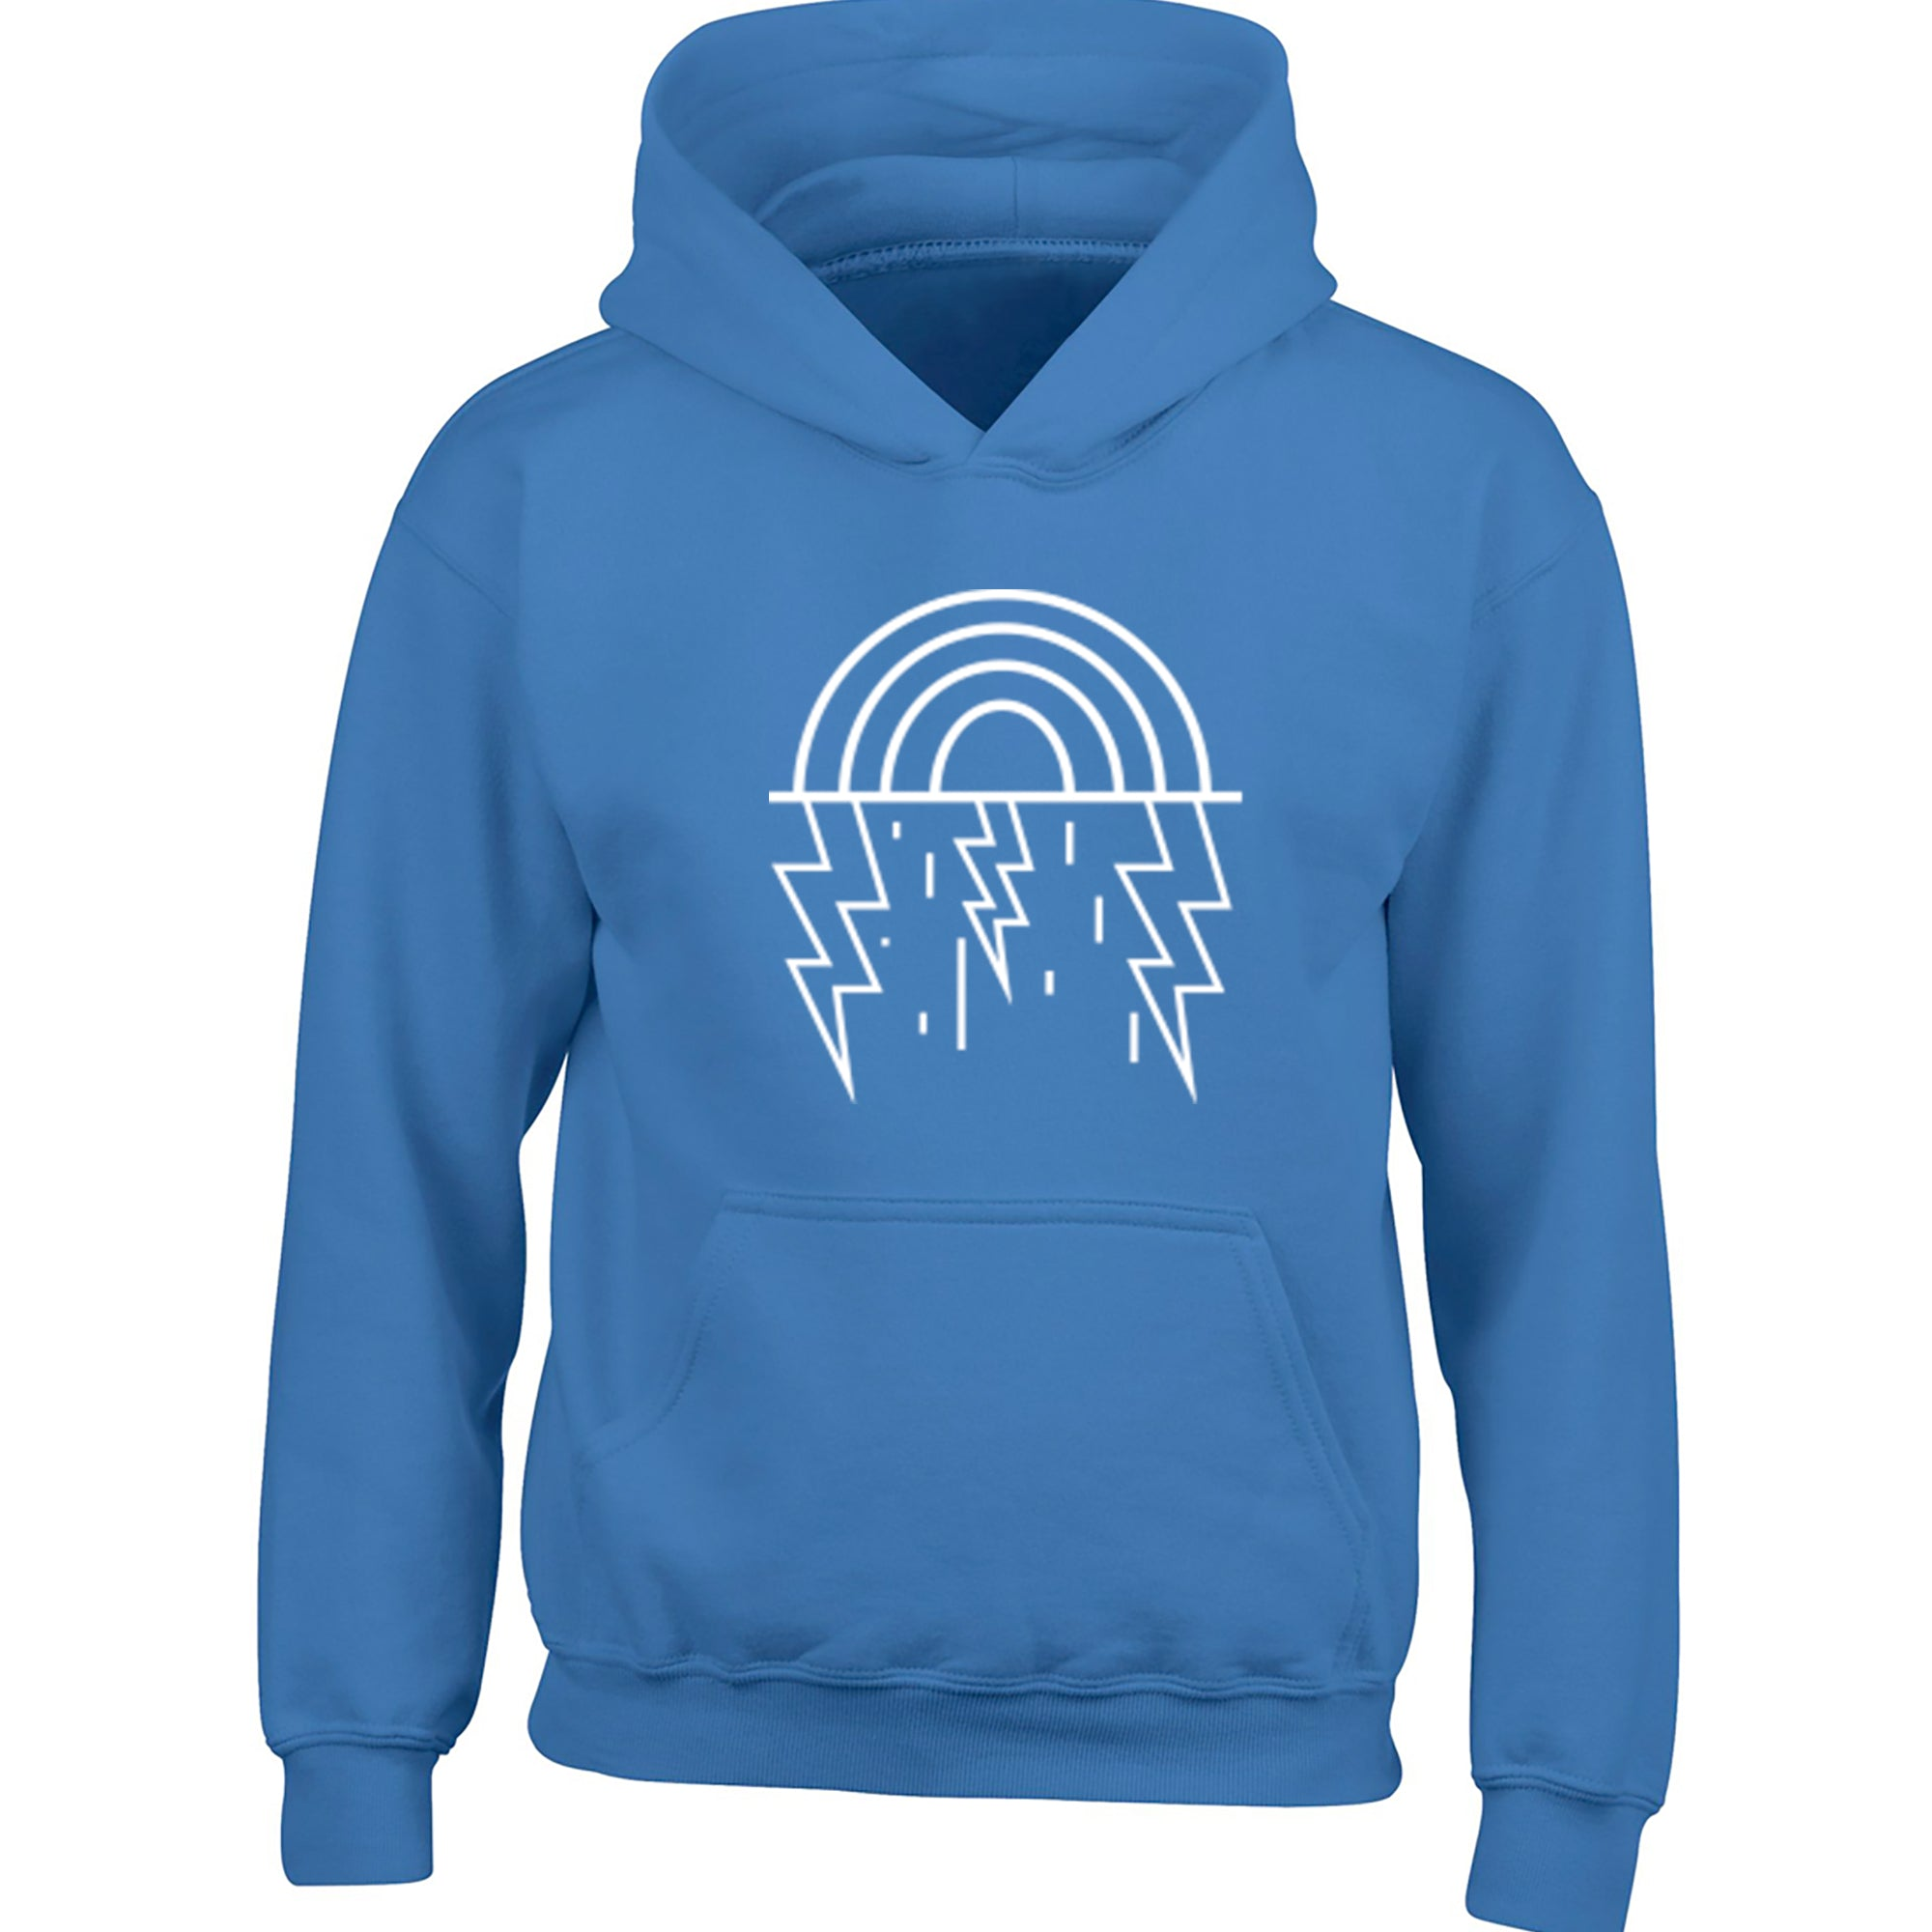 Rainbow And Lightening Childrens Ages 3/4-12/14 Unisex Hoodie S0360 - Illustrated Identity Ltd.